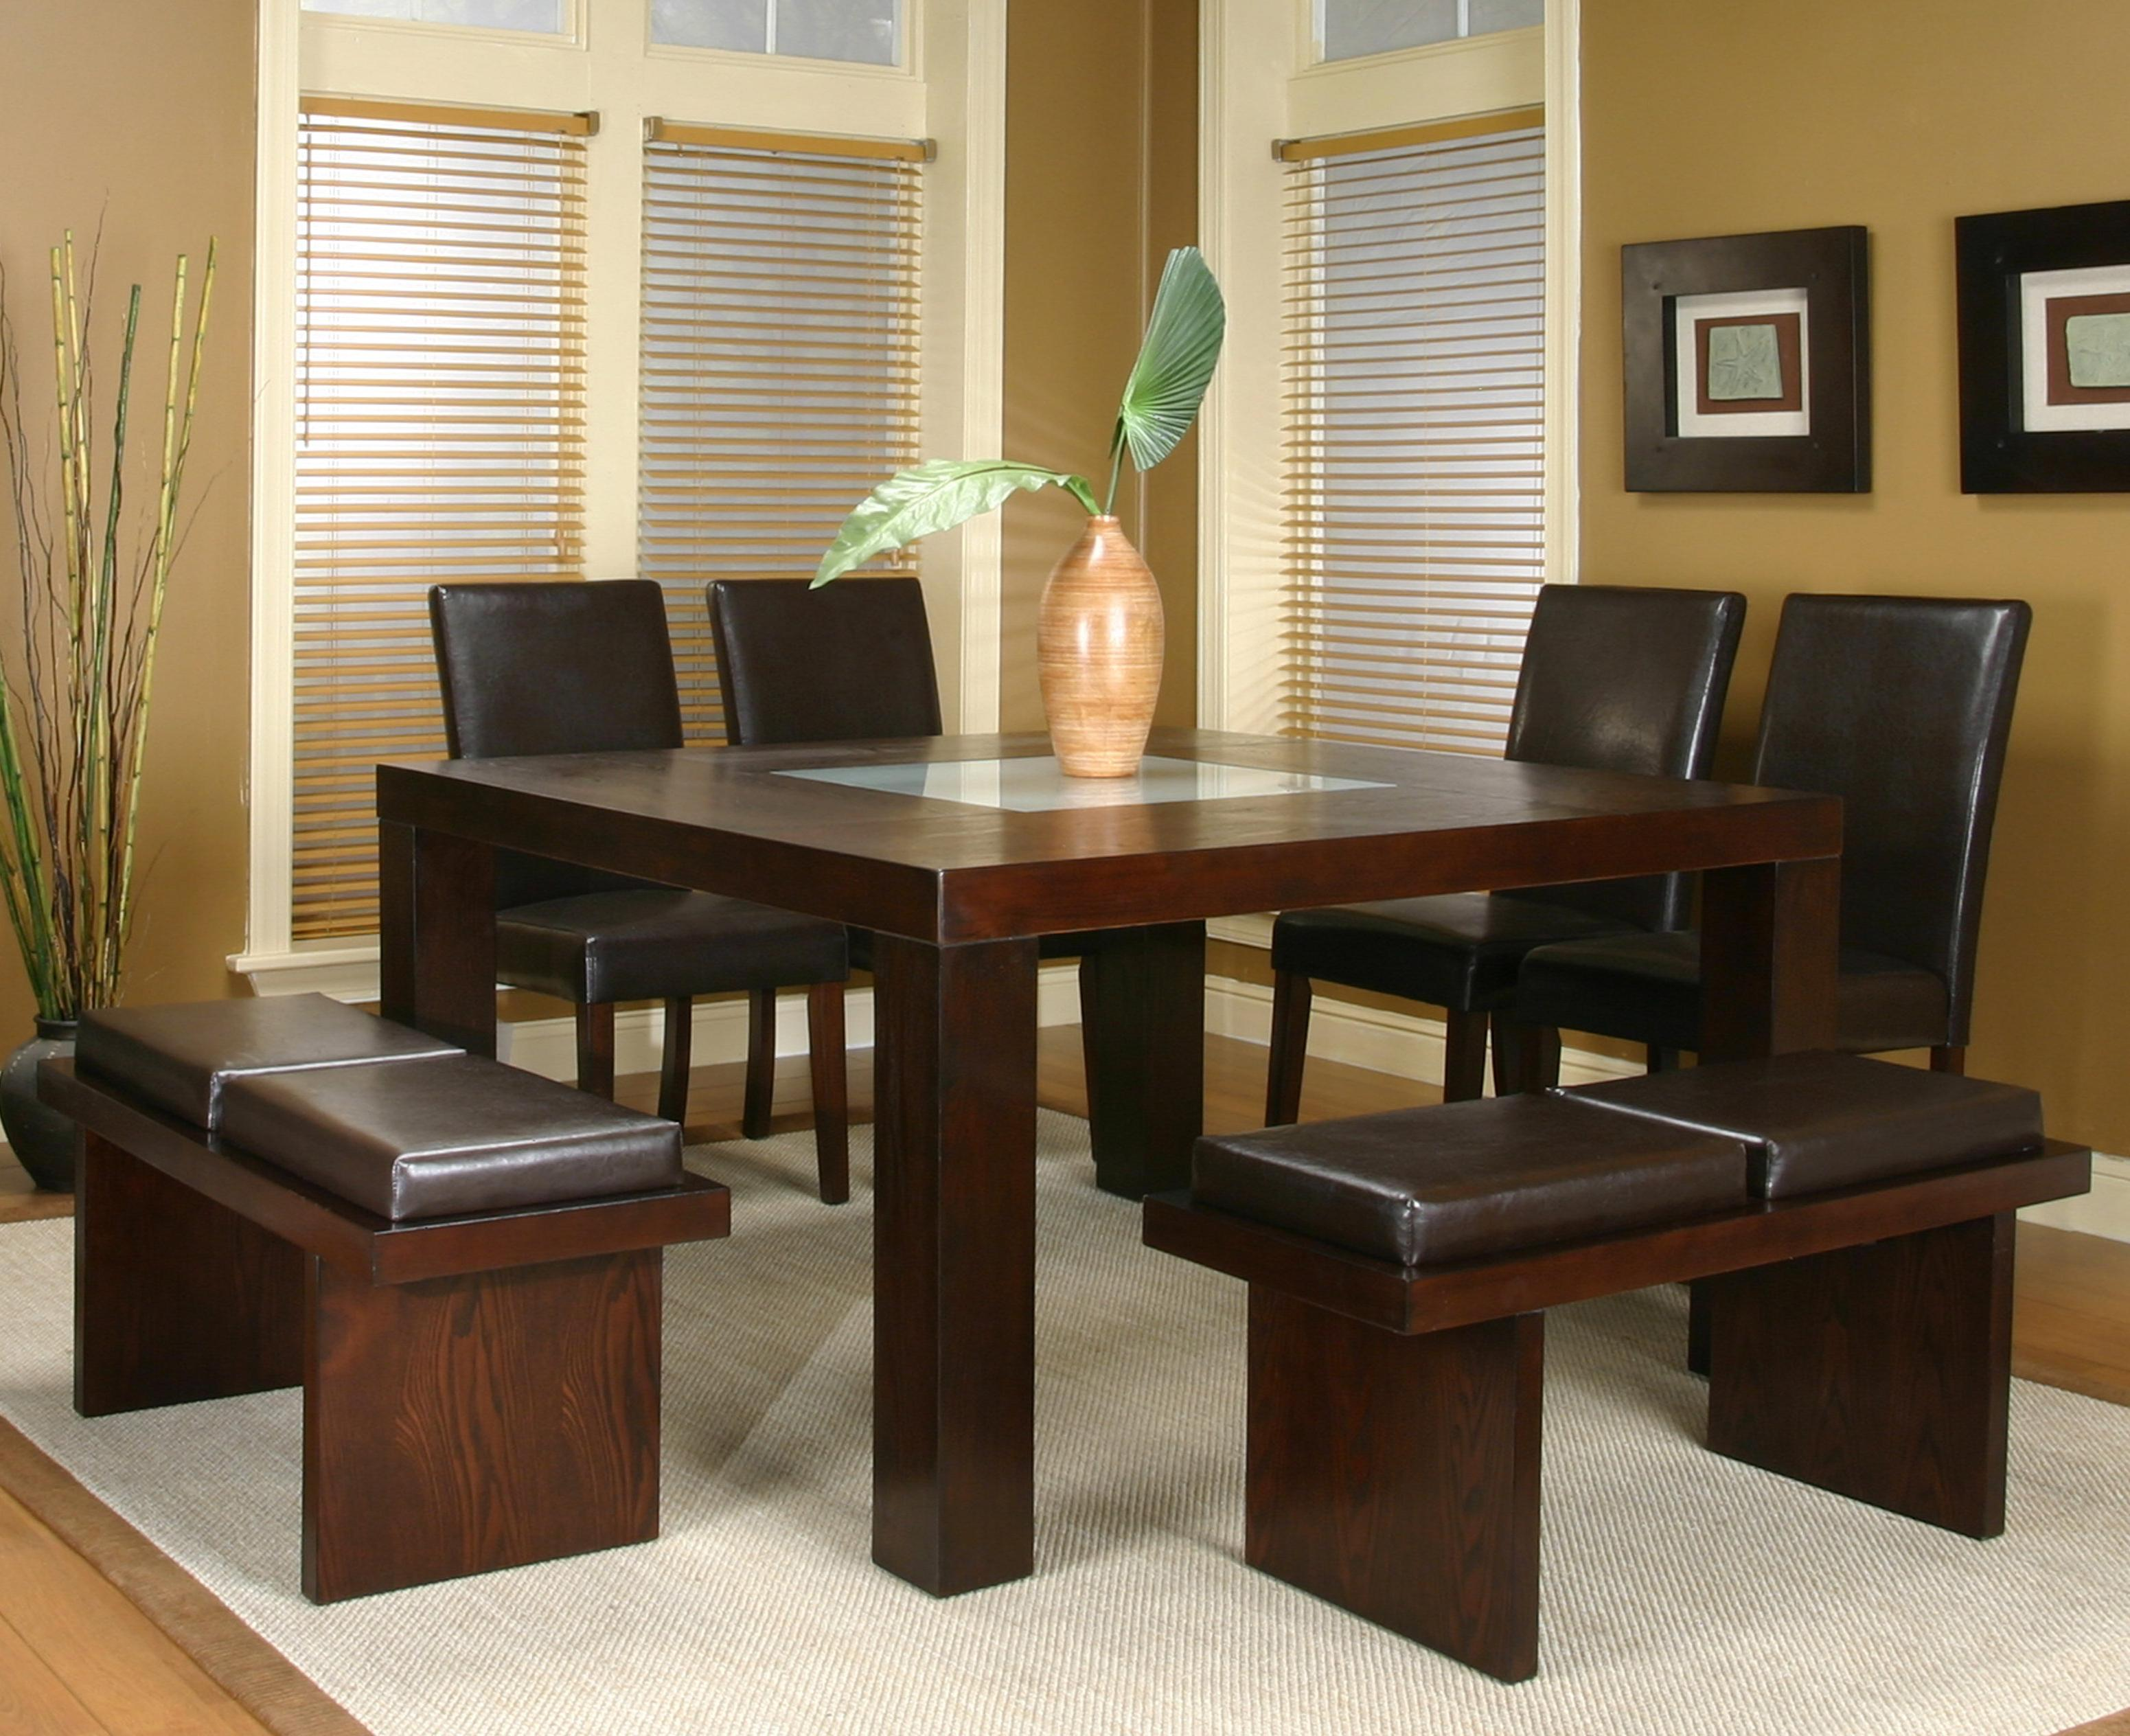 Square dining table with frosted glass insert by cramco for Square glass dining table